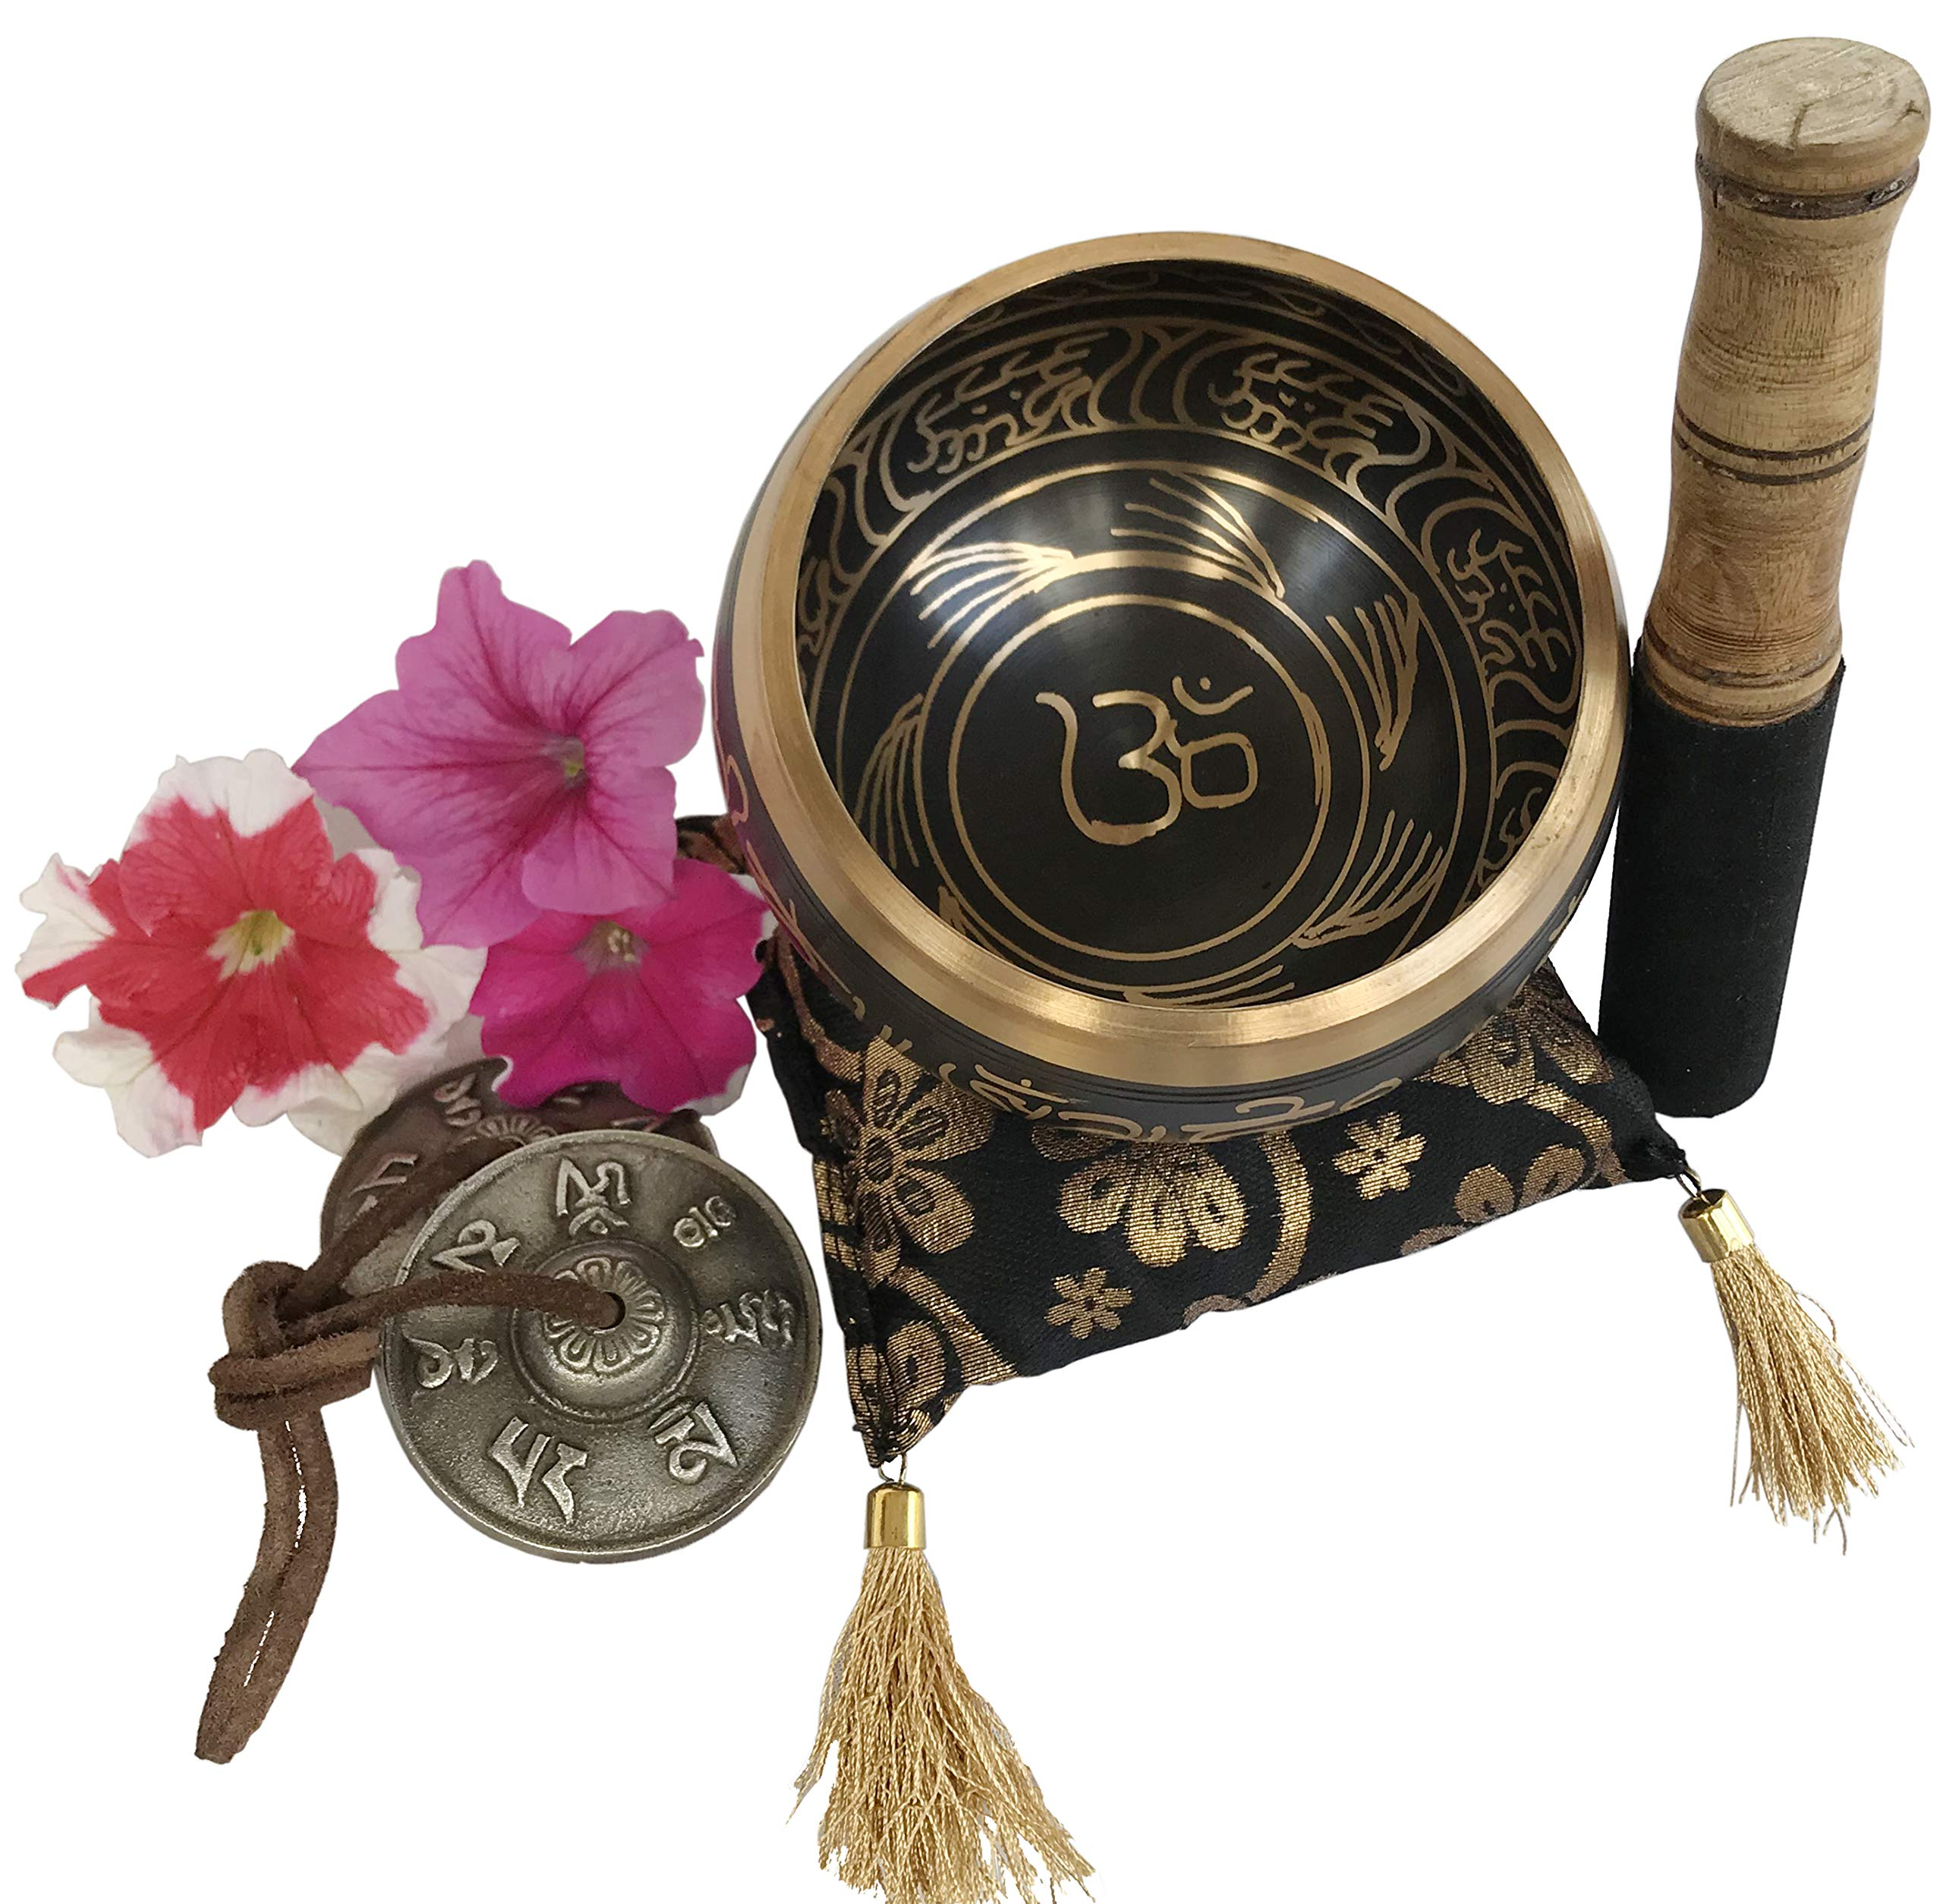 Large Silent Mind Design Tibetan Singing Bowl Tingsha Cymbals Set - With Mallet and Cushion, Additional Gifts Inside - for Yoga, Meditation, Buddhist Prayer and Chakra Healing